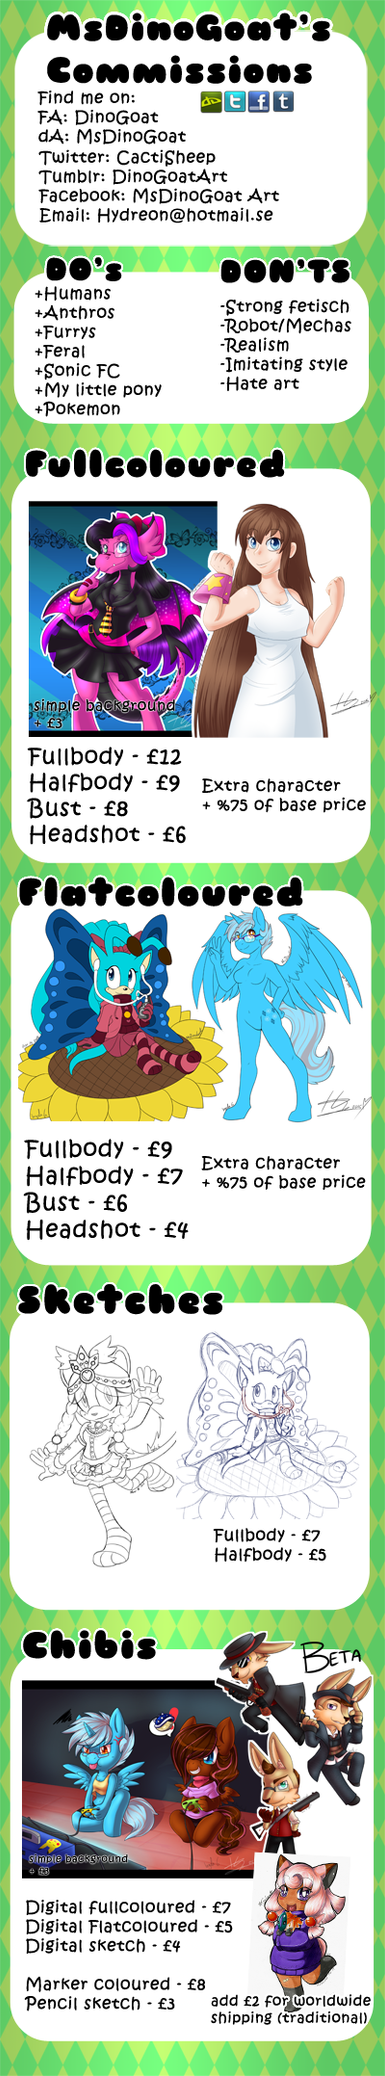 Commission price sheet 2015 by MsDinoGoat